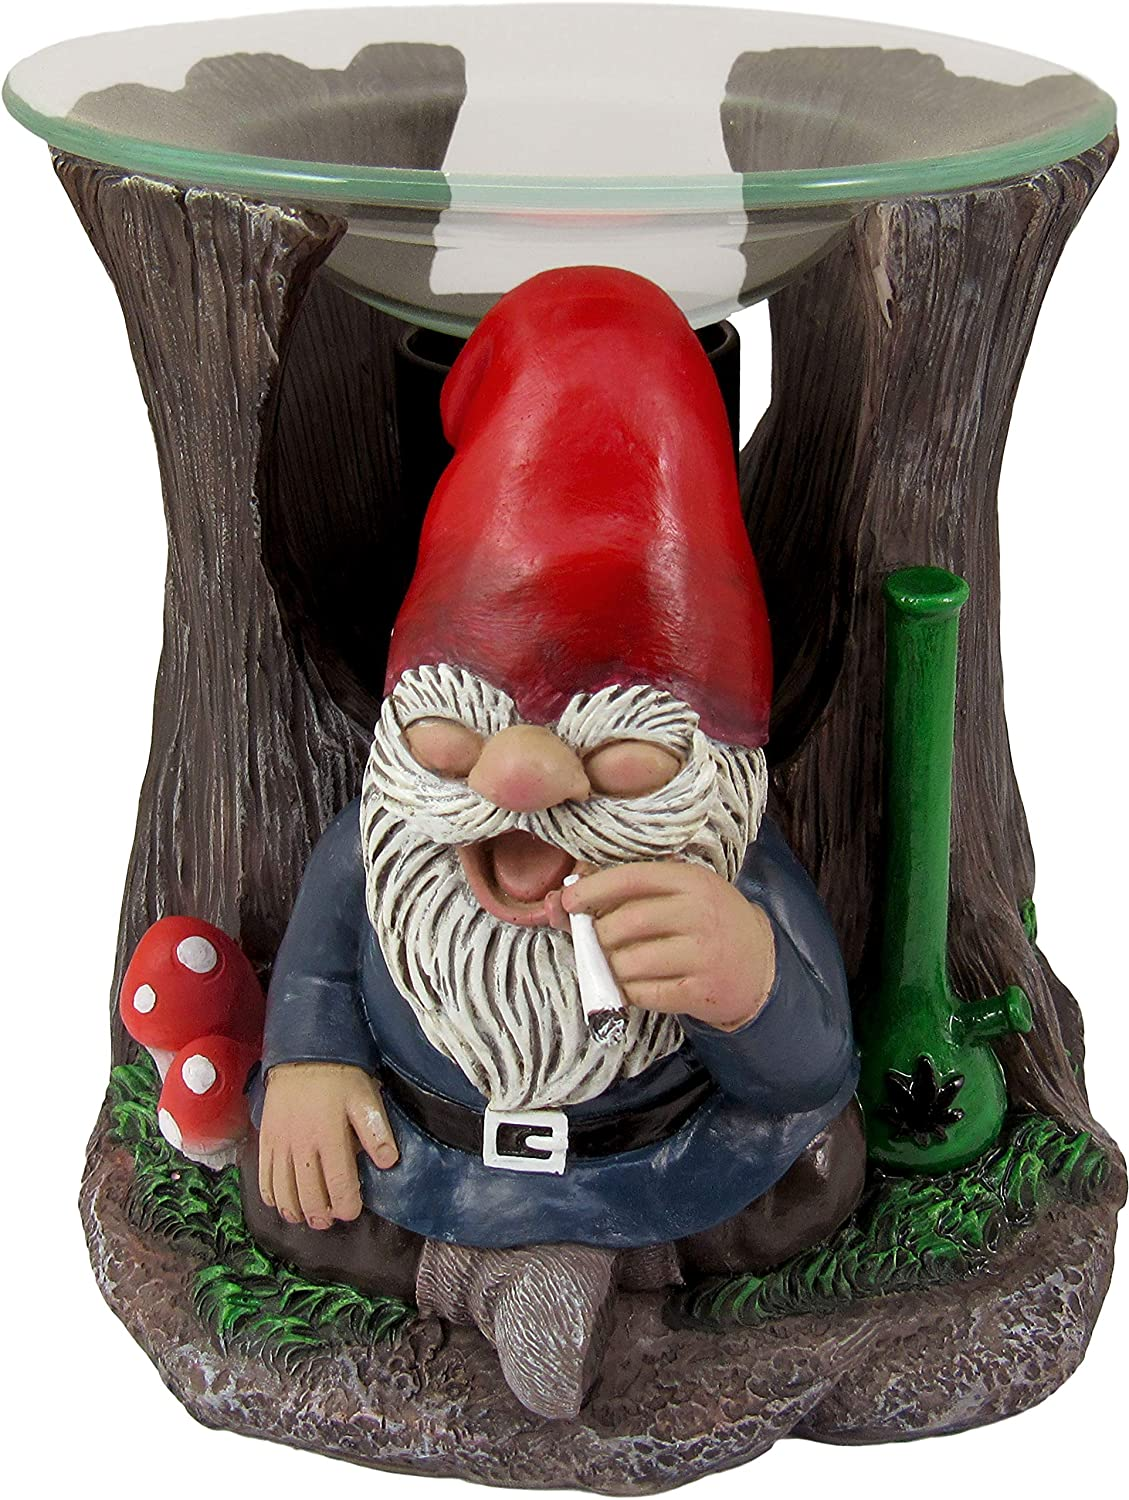 World of Wonders High on The Scent Gnaughty Gnomes Series | Essential Oil Holder | Room Decoration | Oil Burners and Essential Oils | Room Decor | Kitchen Decor | Electric Wax Warmer